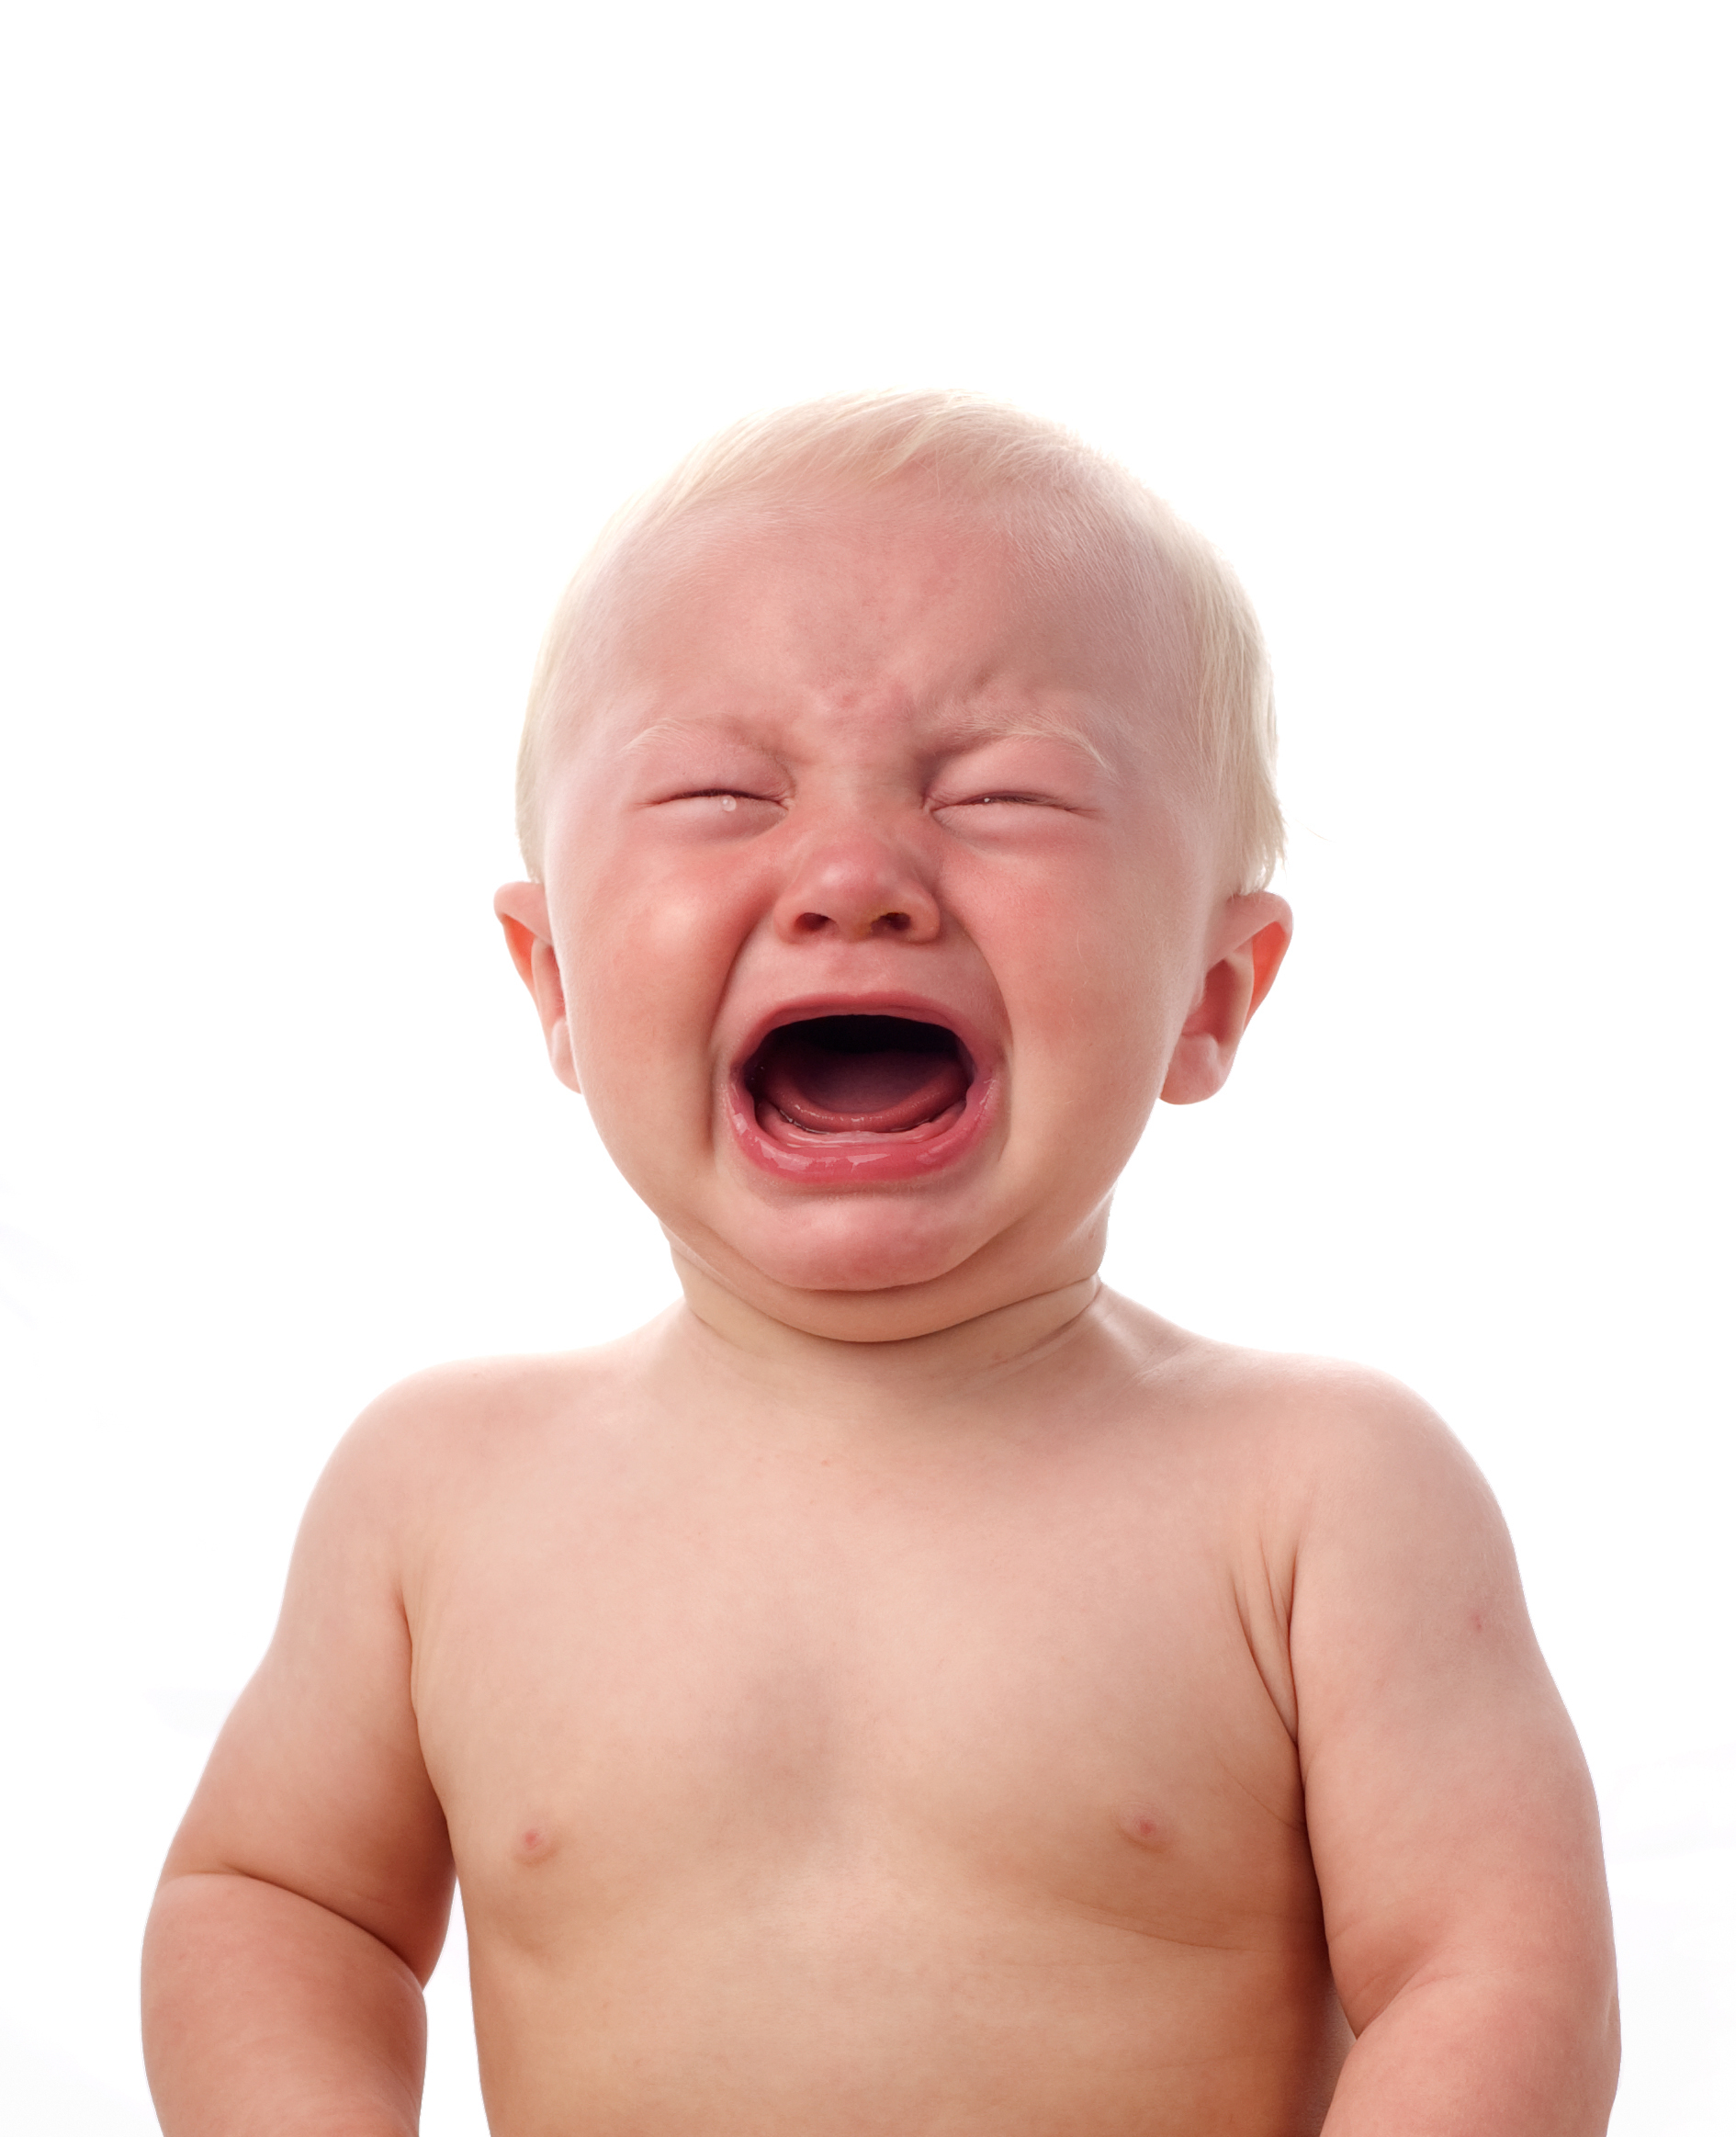 Baby Crying Png (108+ images in Collection) Page 3.